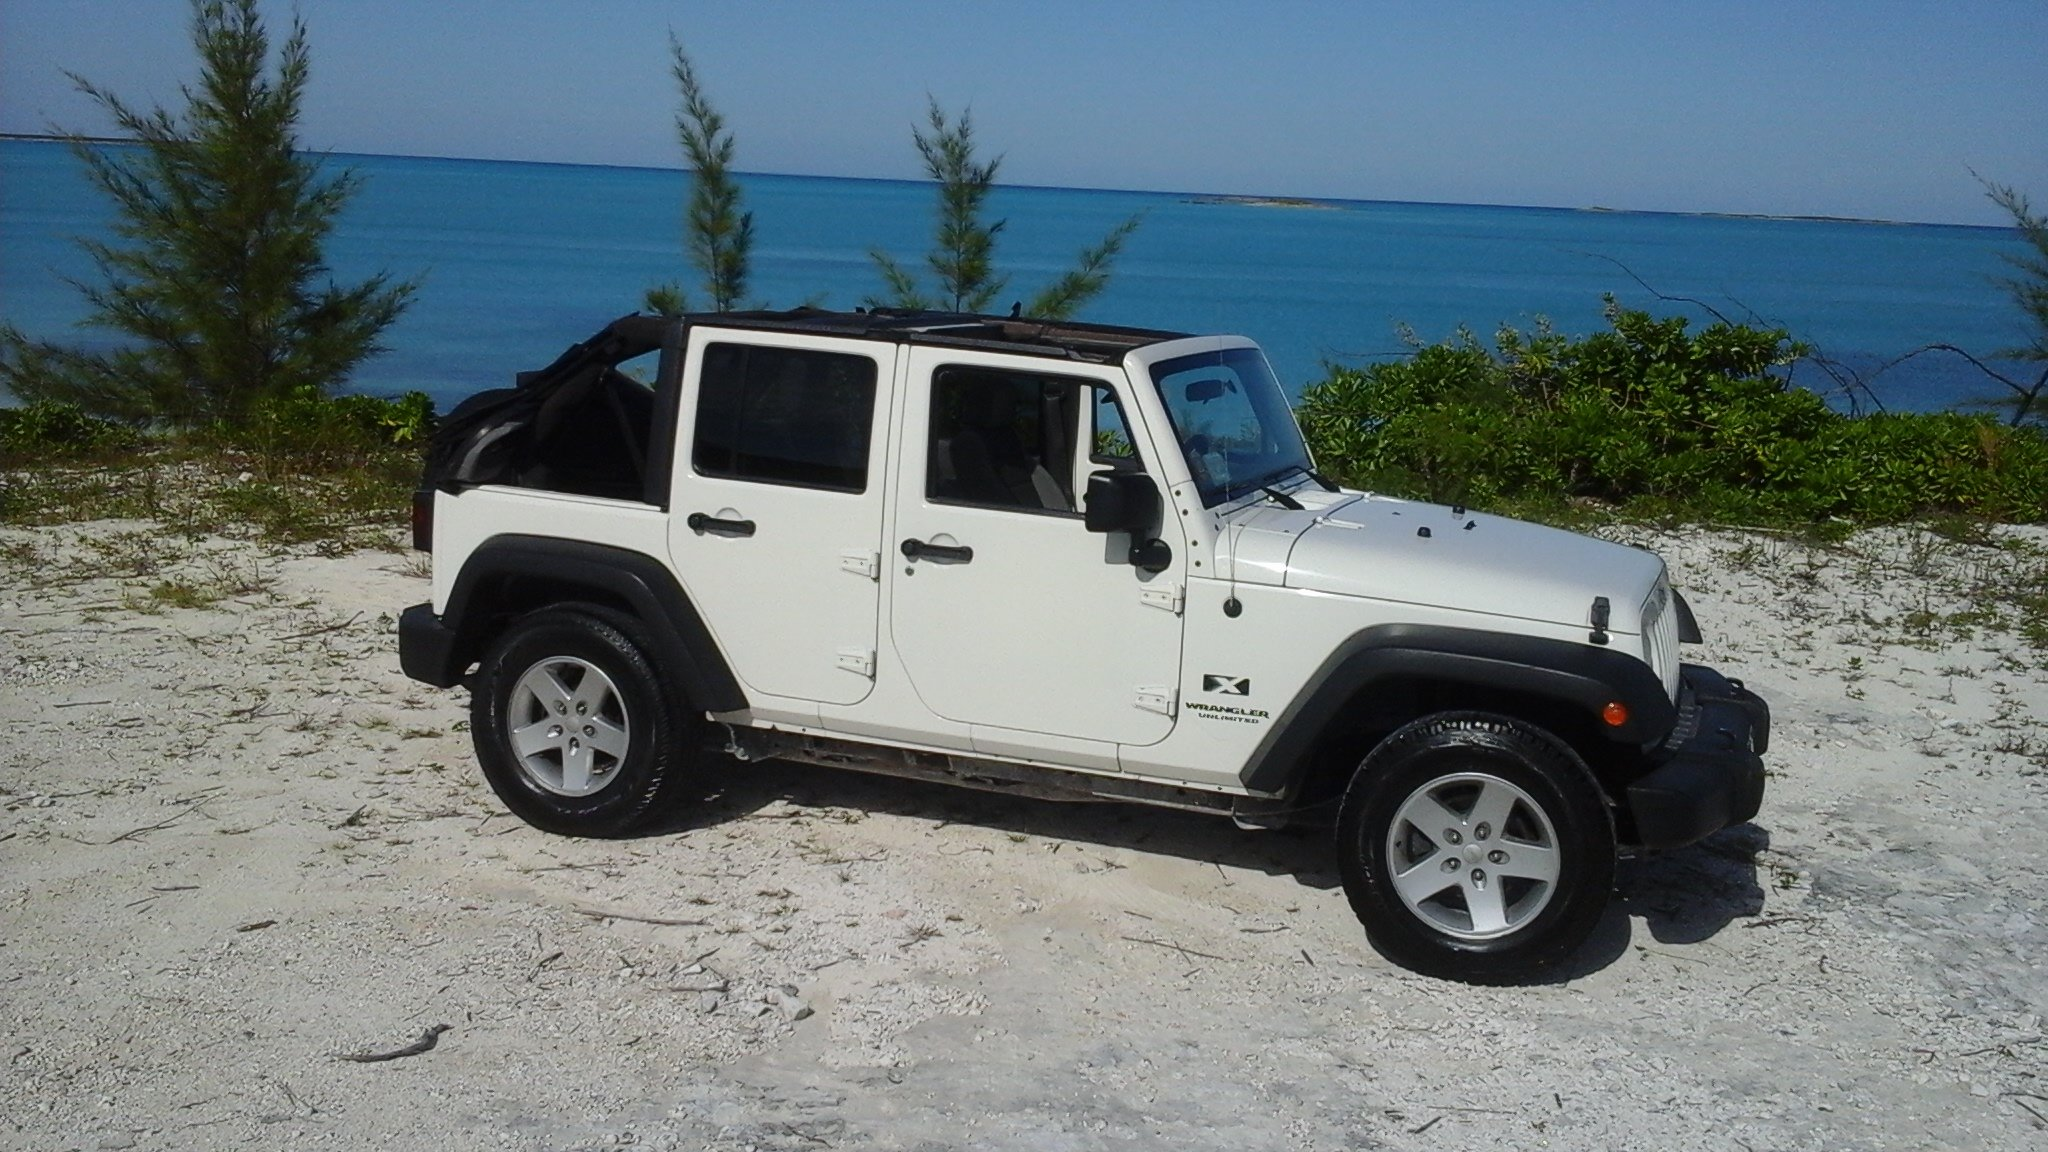 hardtop jeep a wrangler rent bayshore in white out leather automotive florida unlimited revo